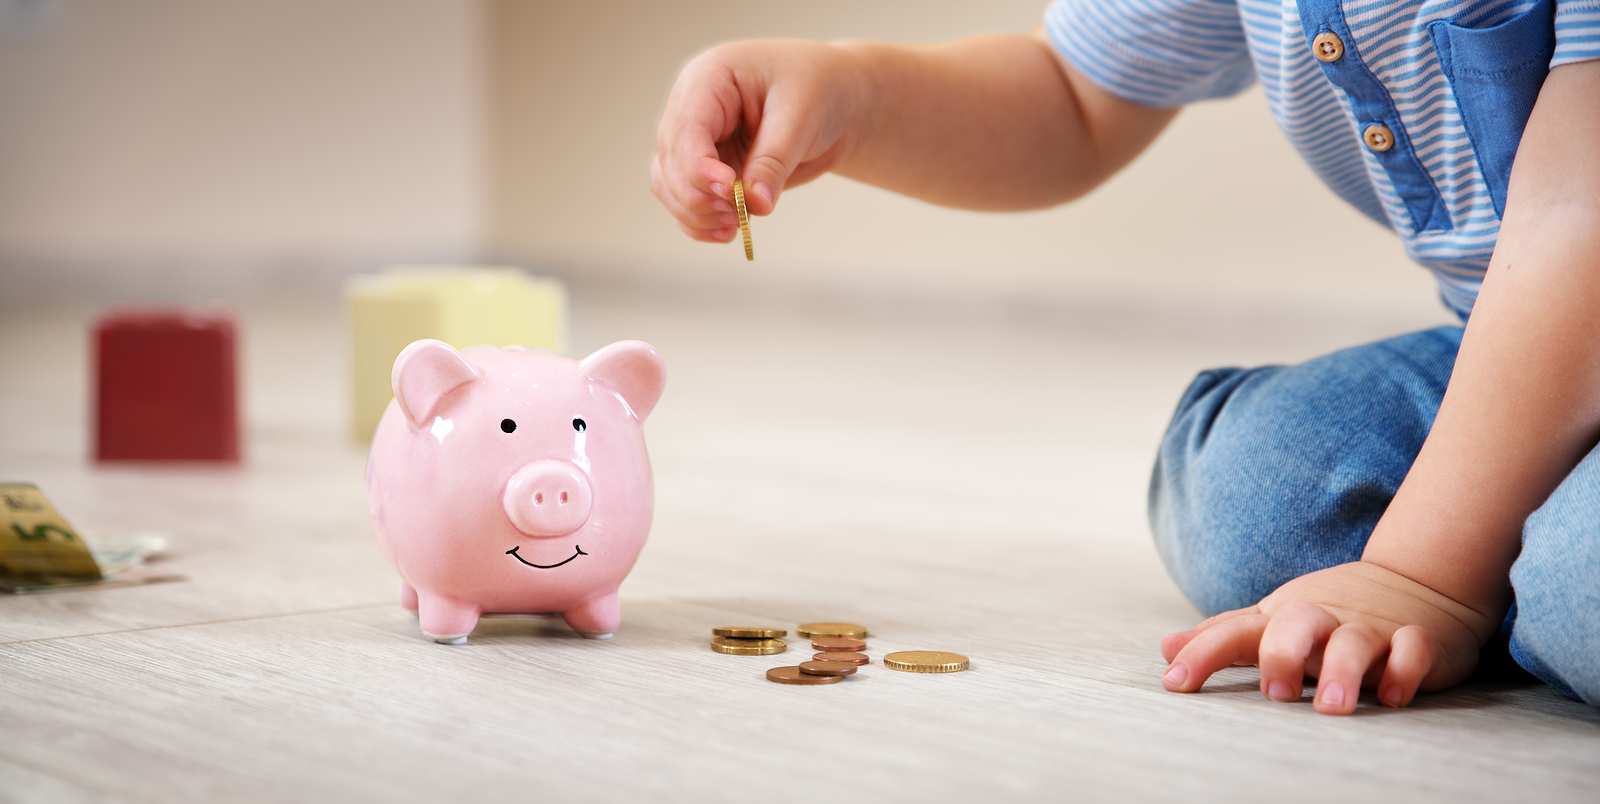 two years old child sitting on the floor and putting a euro coin into a piggybank.